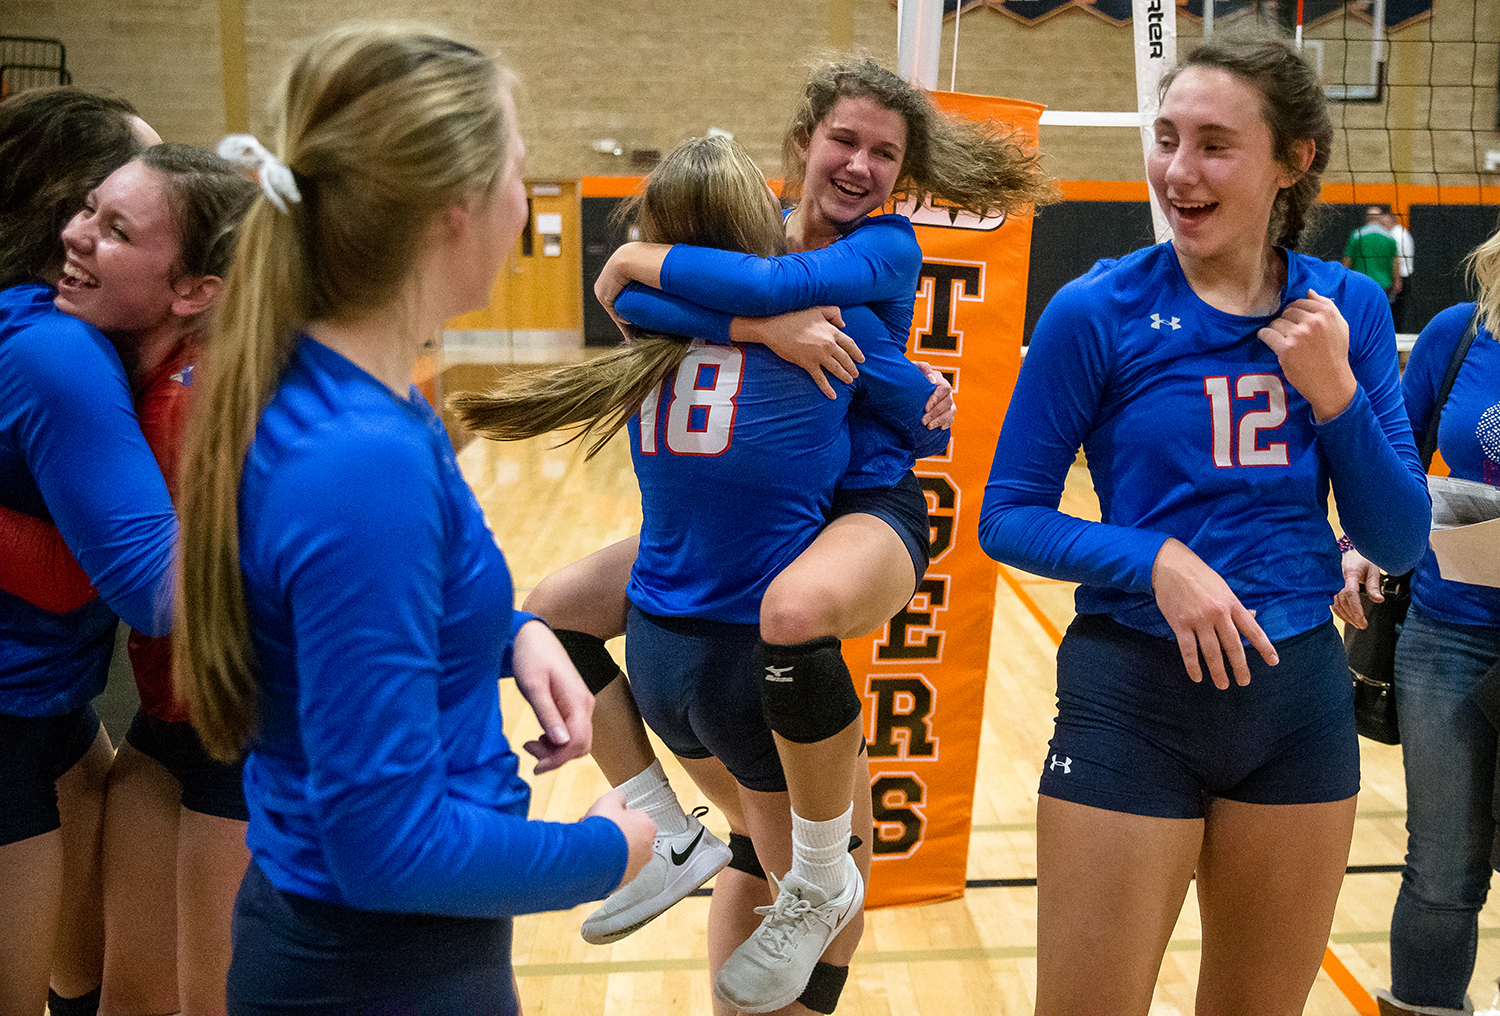 Pleasant Plains' Ali Fraase (7) celebrates with Pleasant Plains' Anna Kanllakan (18) after the Cardinals defeated Eureka in the Class 2A Beardstown Supersectional at Beardstown High School, Friday, Nov. 2, 2018, in Beardstown, Ill. [Justin L. Fowler/The State Journal-Register]